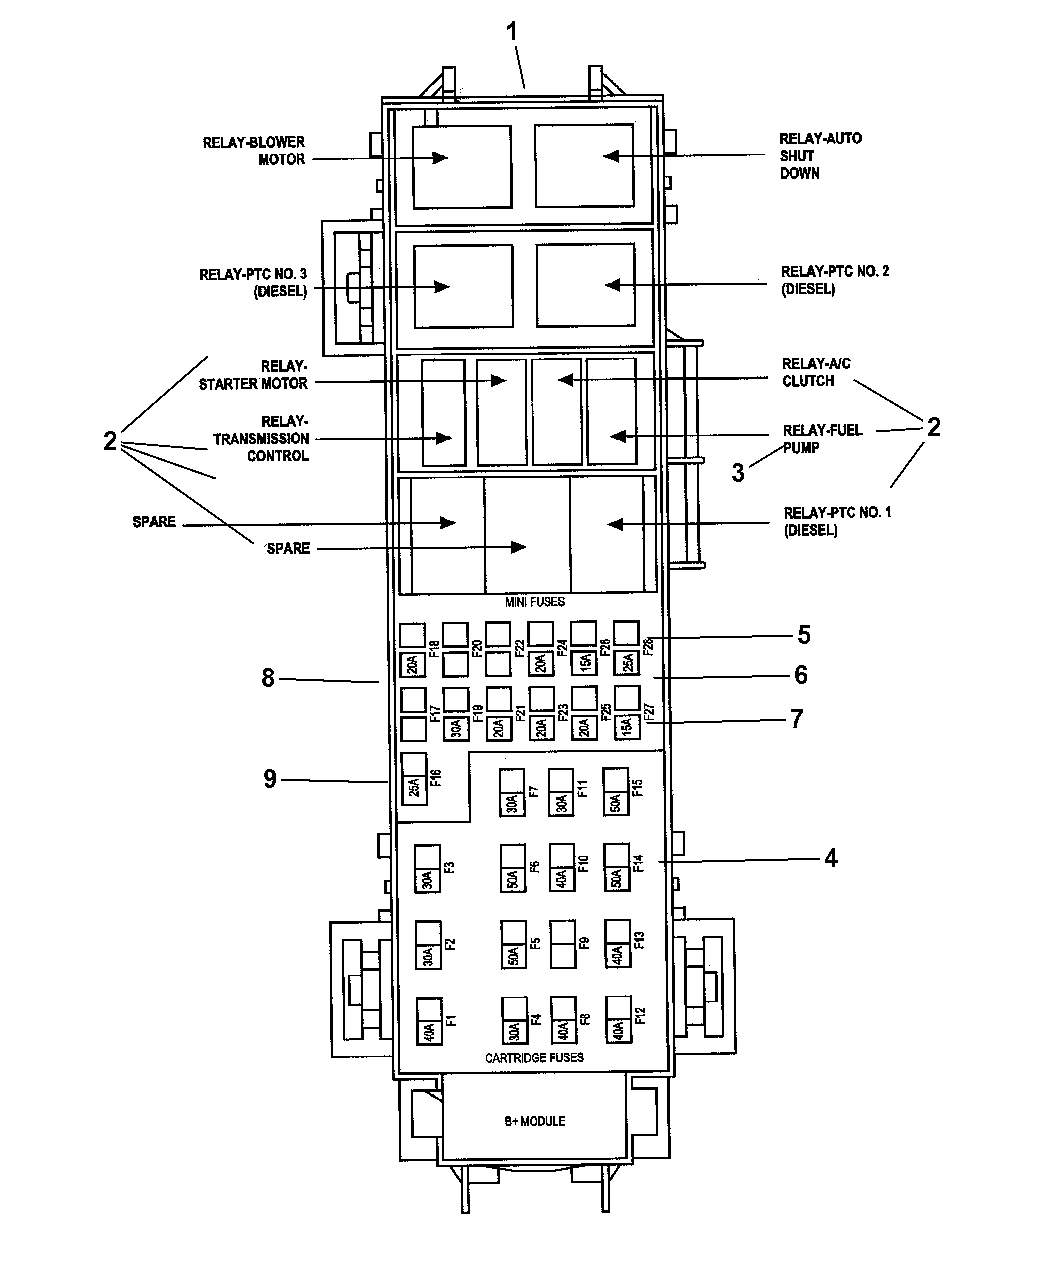 2011 jeep grand cherokee overland fuse diagram